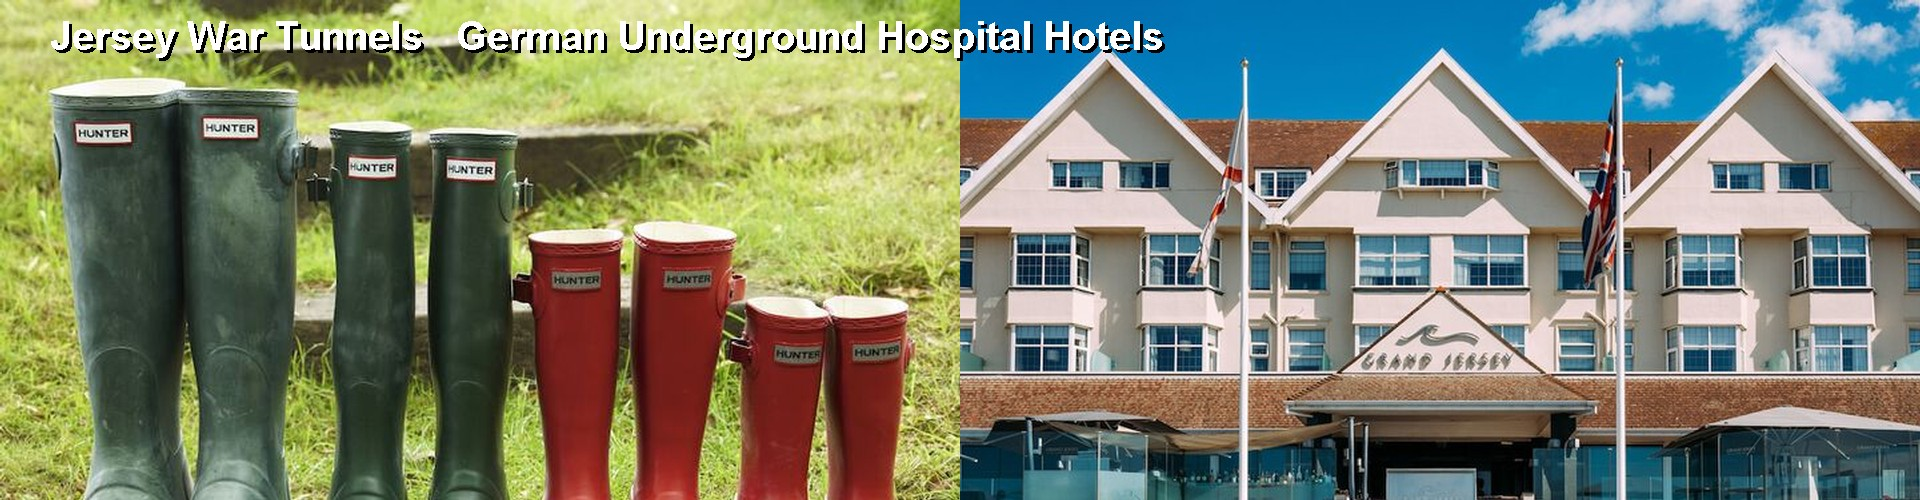 5 Best Hotels near Jersey War Tunnels German Underground Hospital